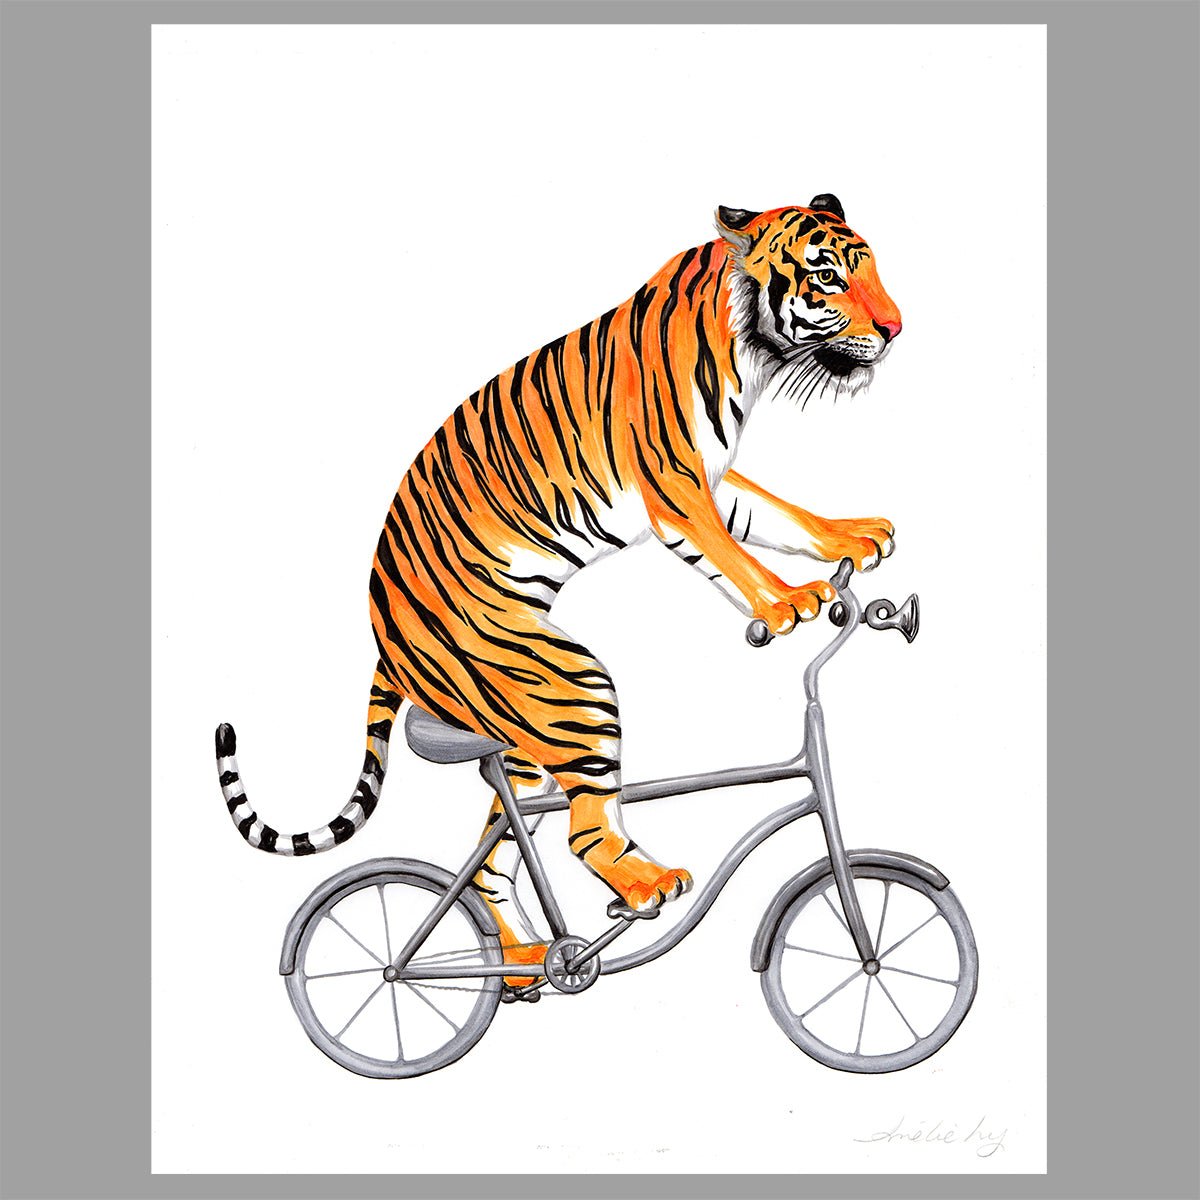 Tiger illustration, original artwork, amelie legault, bike